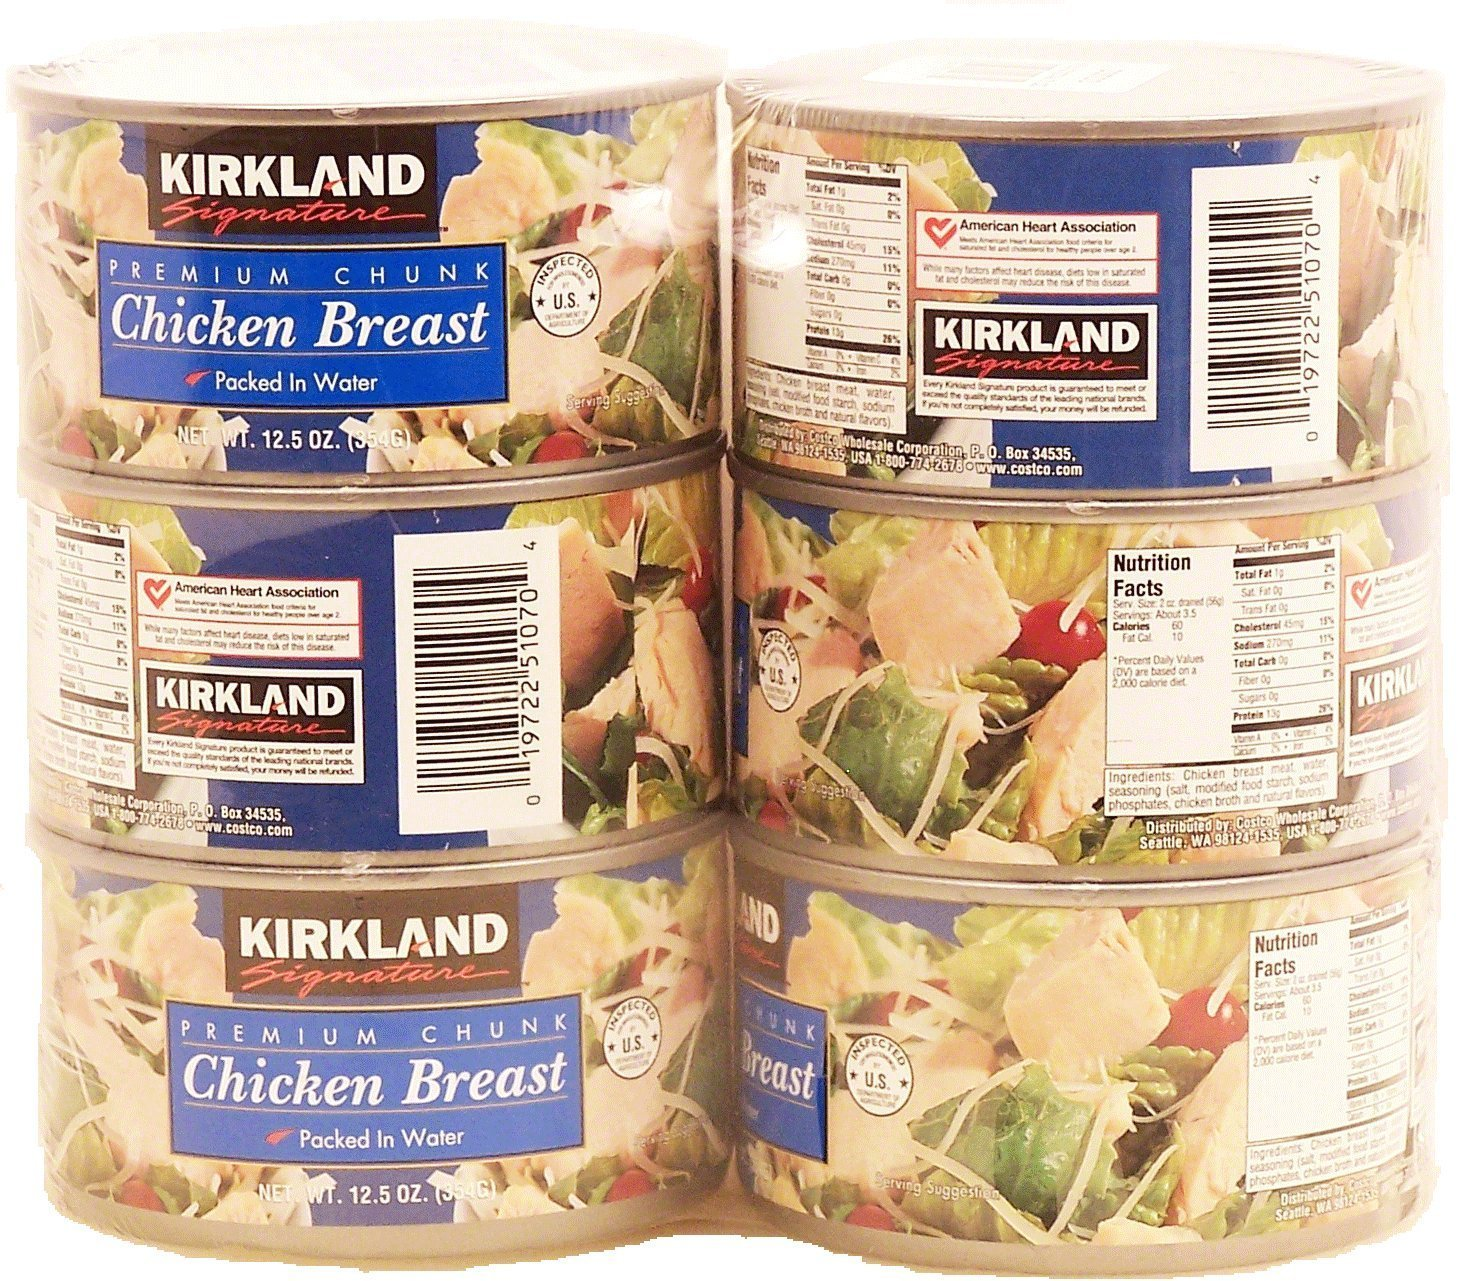 Kirkland Signature Premium Chunk Chicken Breast Packed in Water, 12.5 Ounce, 6 Count by Kirkland Signature